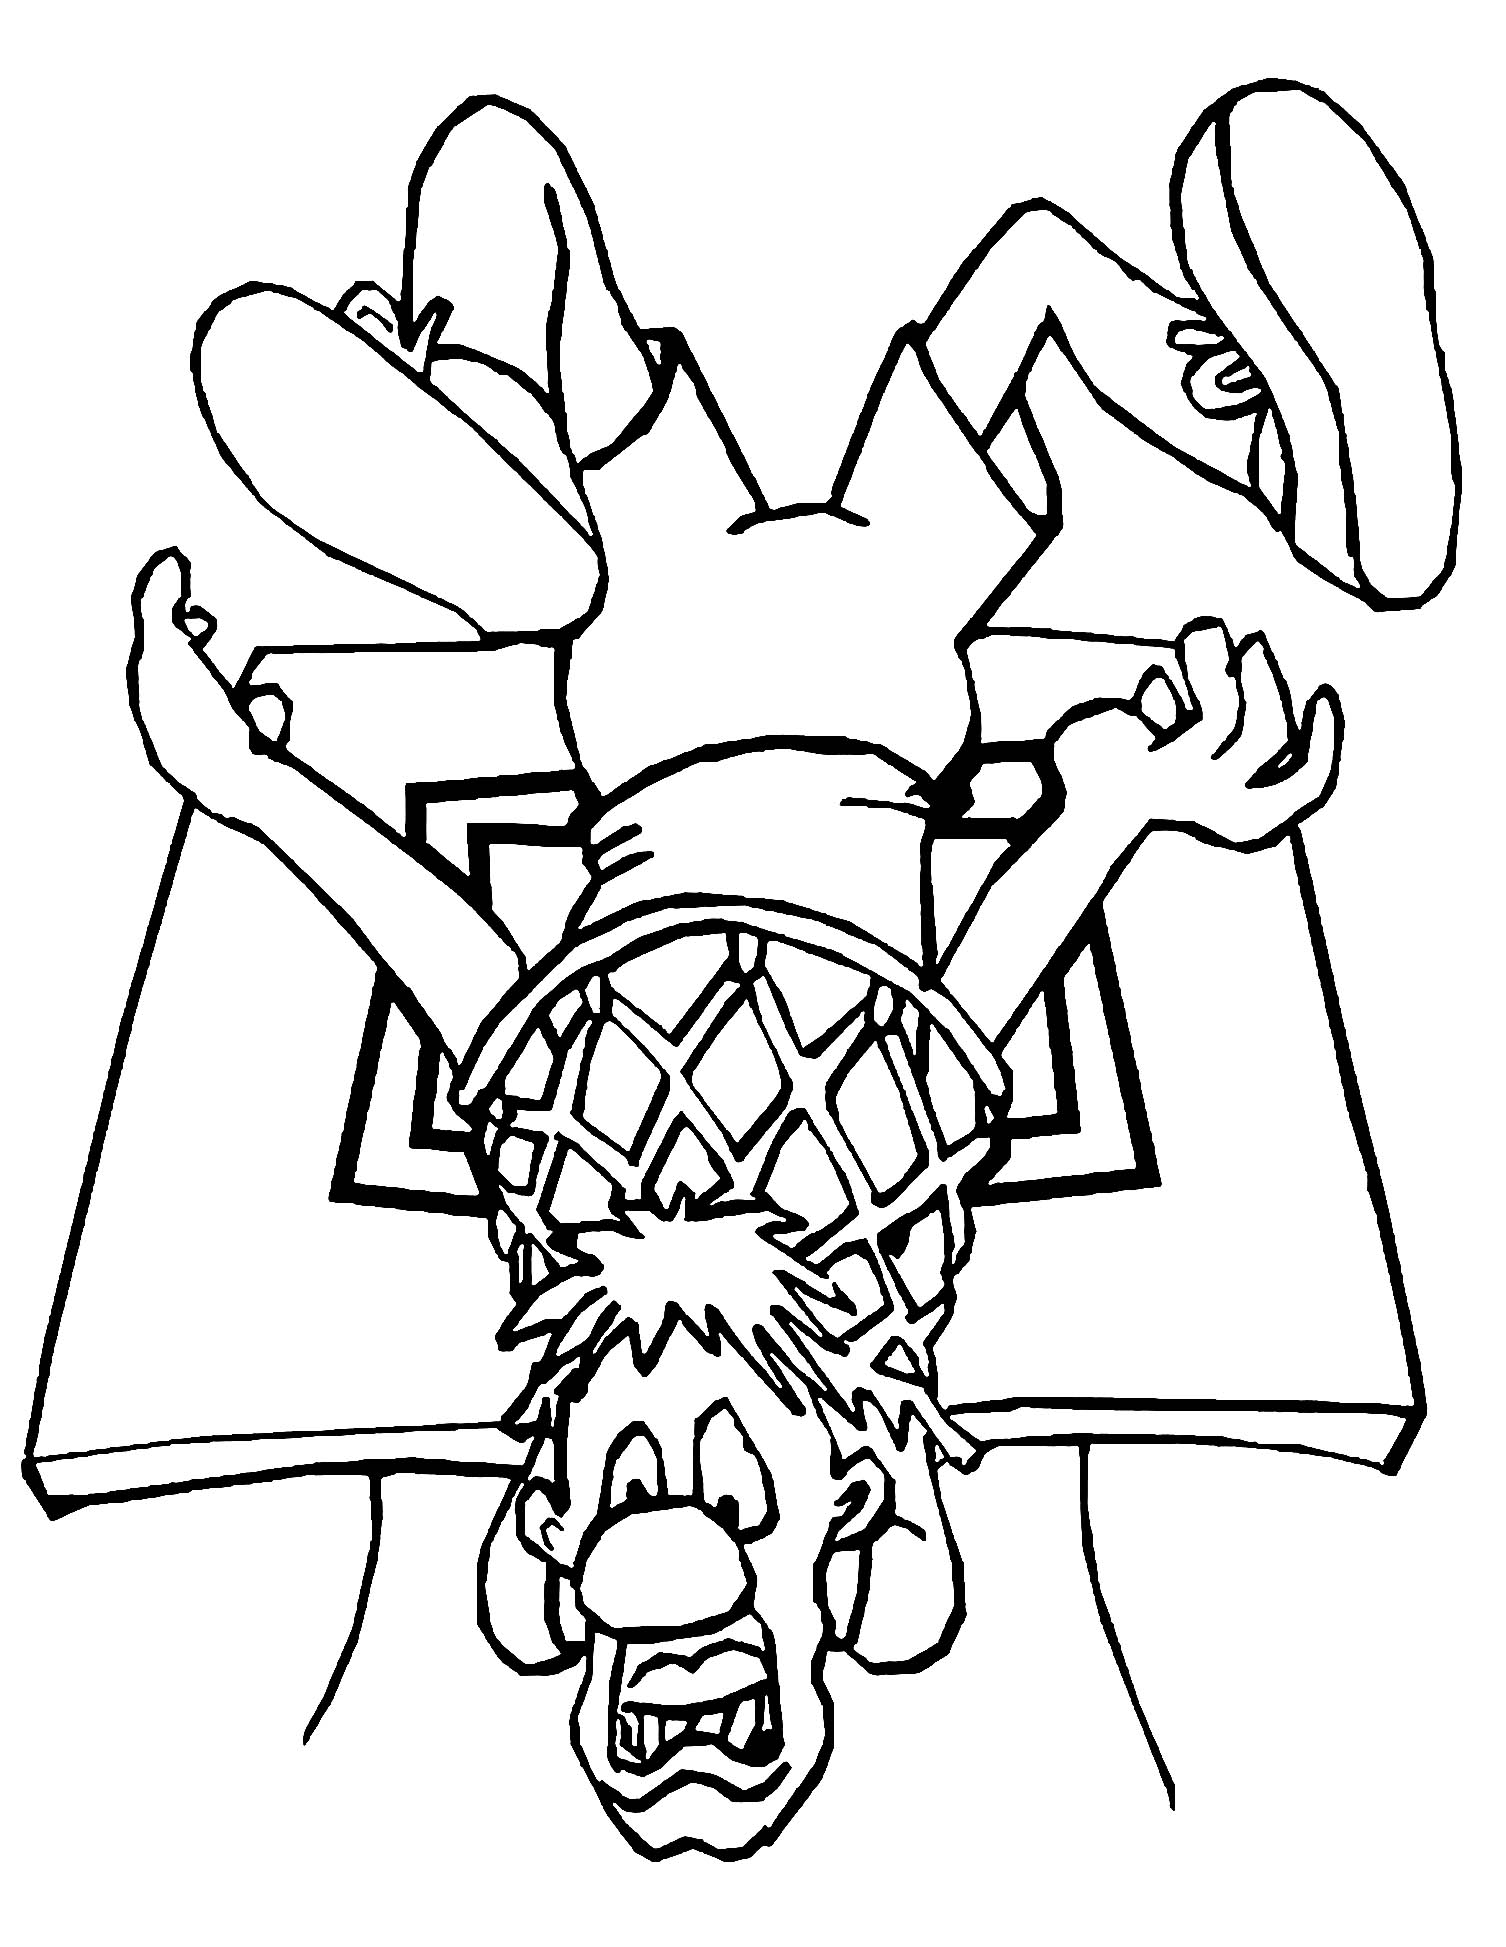 basketball coloring sheet basketball coloring pages to download and print for free coloring basketball sheet